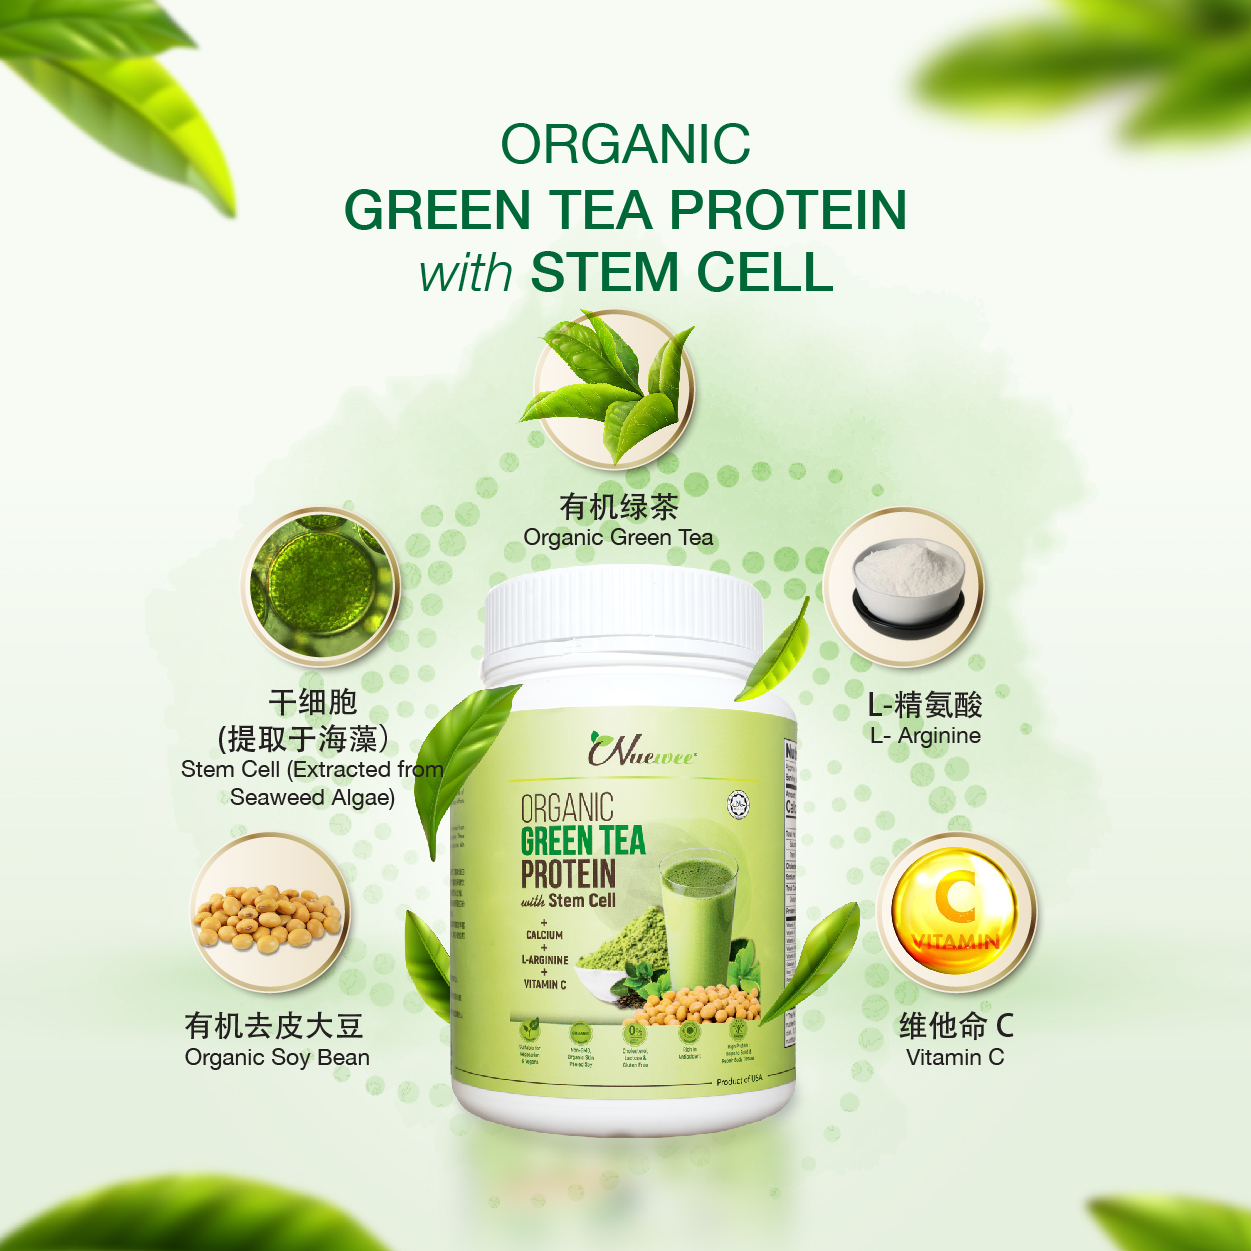 Nuewee-Organic-Green-Tea-Protein-New-1KG.jpg